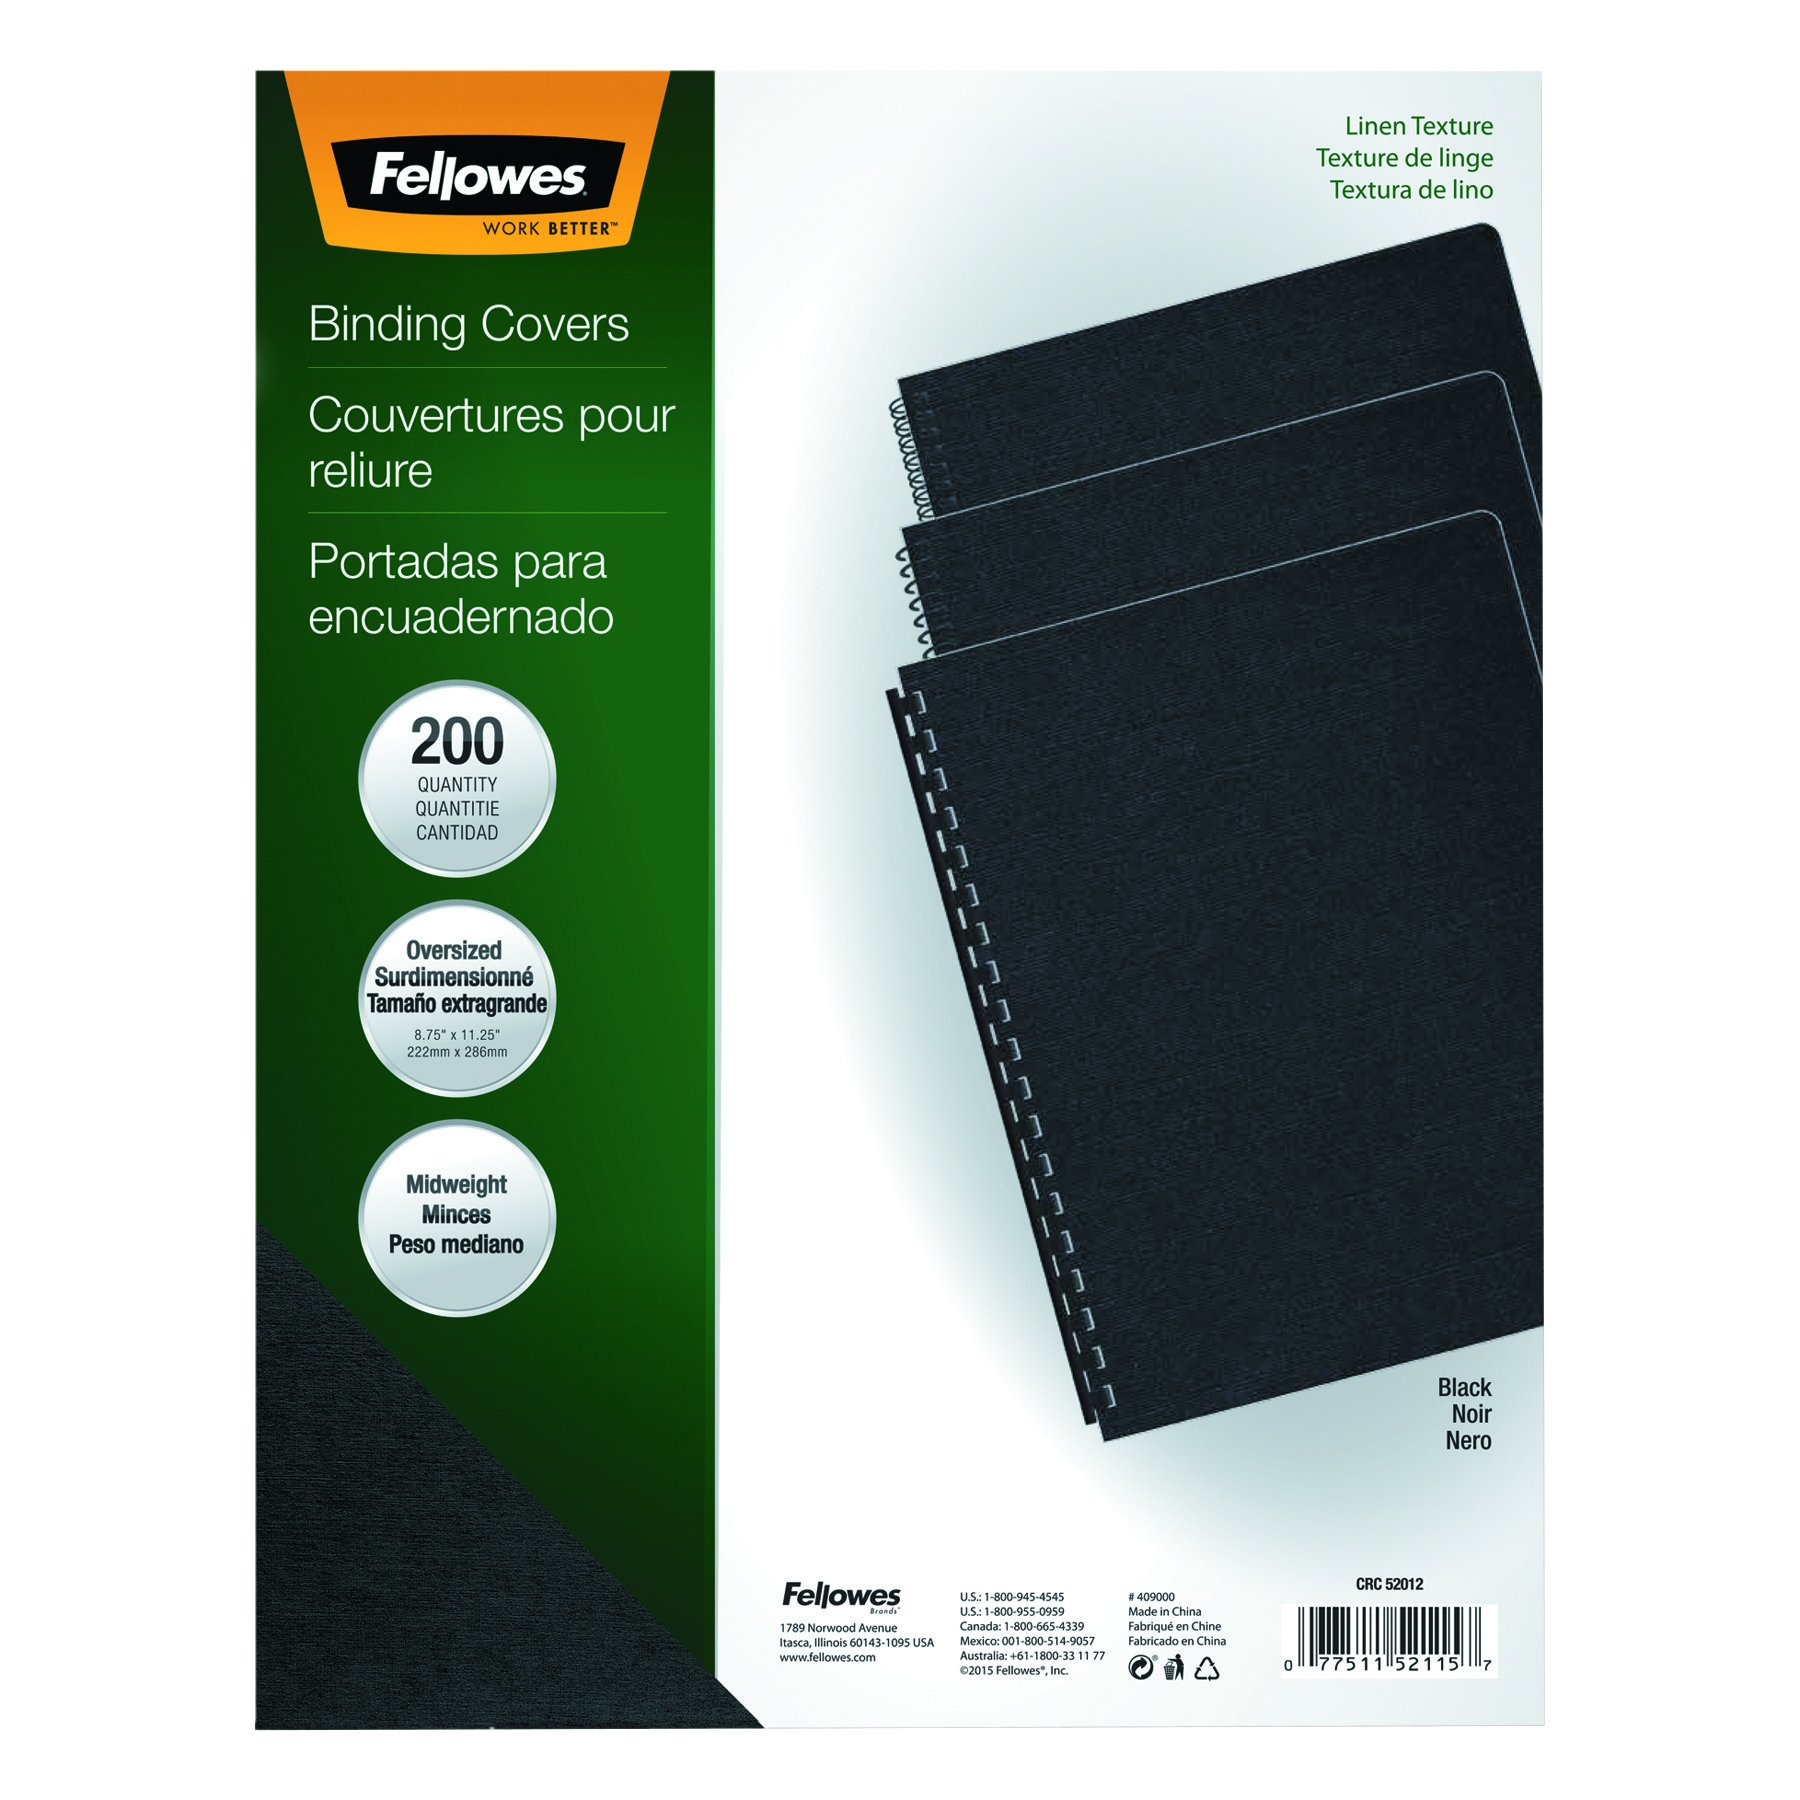 Fellowes 52115 Linen Texture Binding System Covers, 11-1/4 x 8-3/4, Black (Pack of 200) by Fellowes (Image #4)